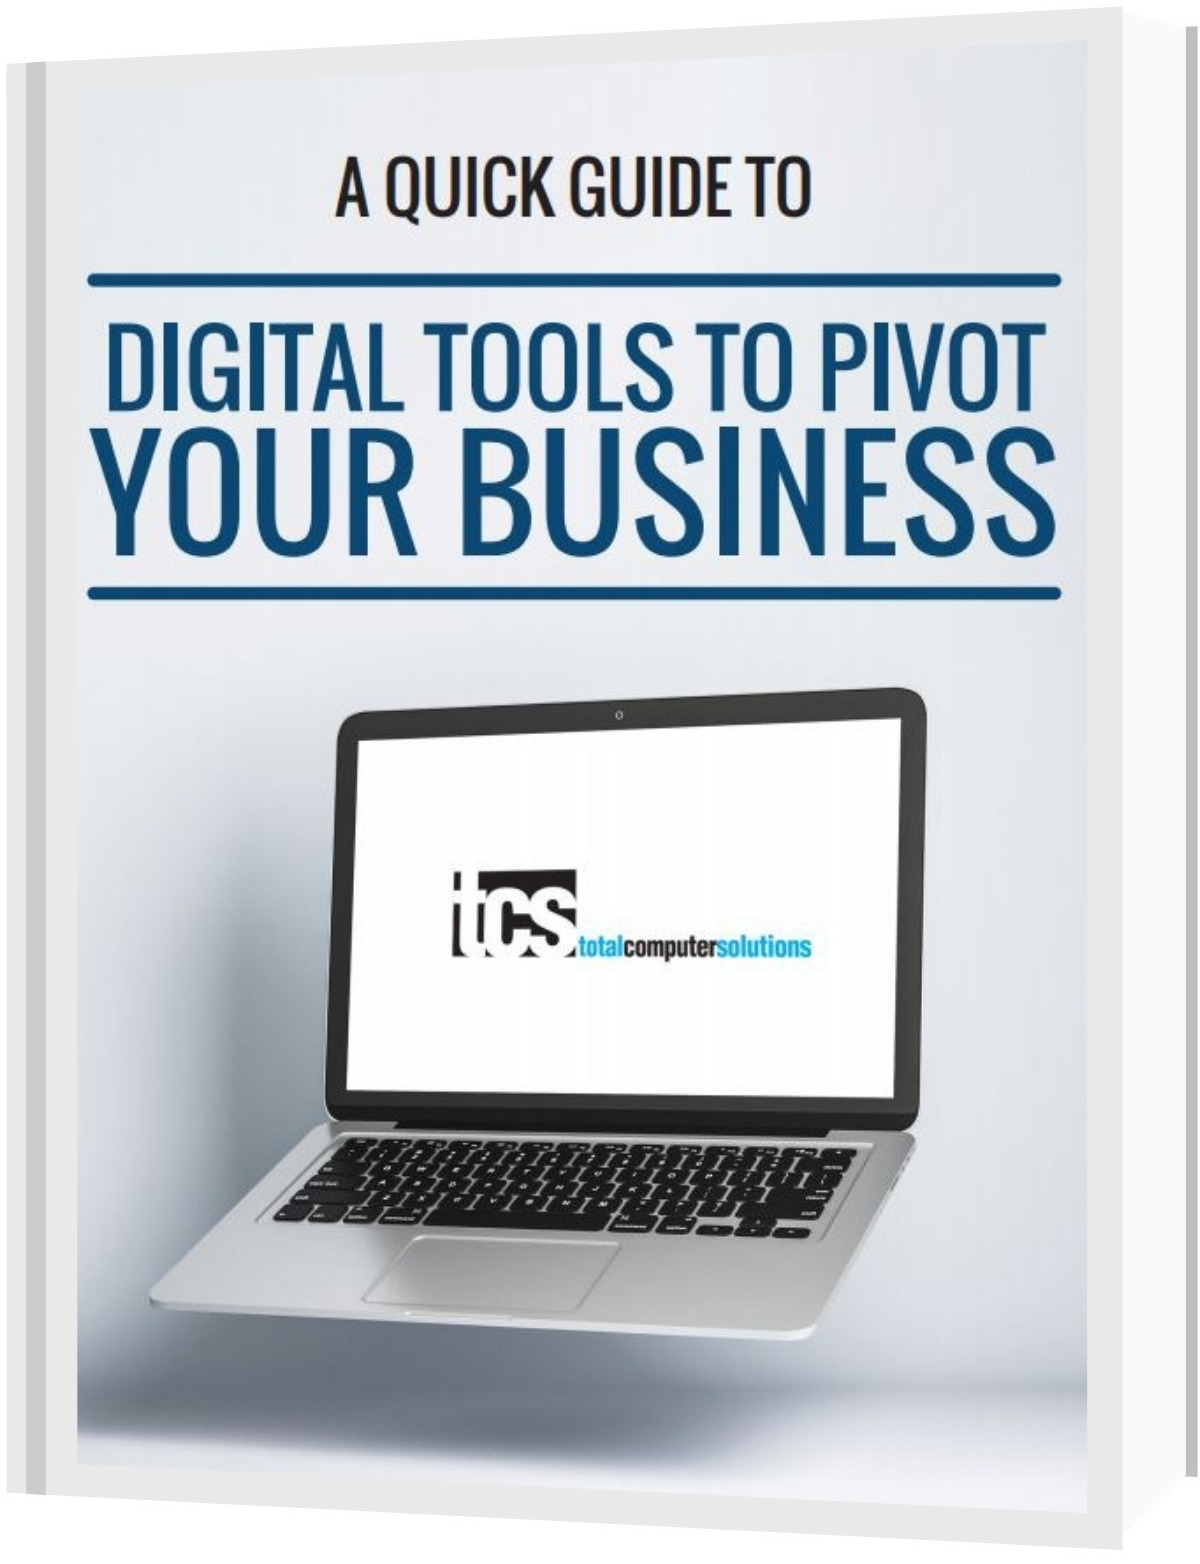 Digital Tools to Pivot Your Business Guide